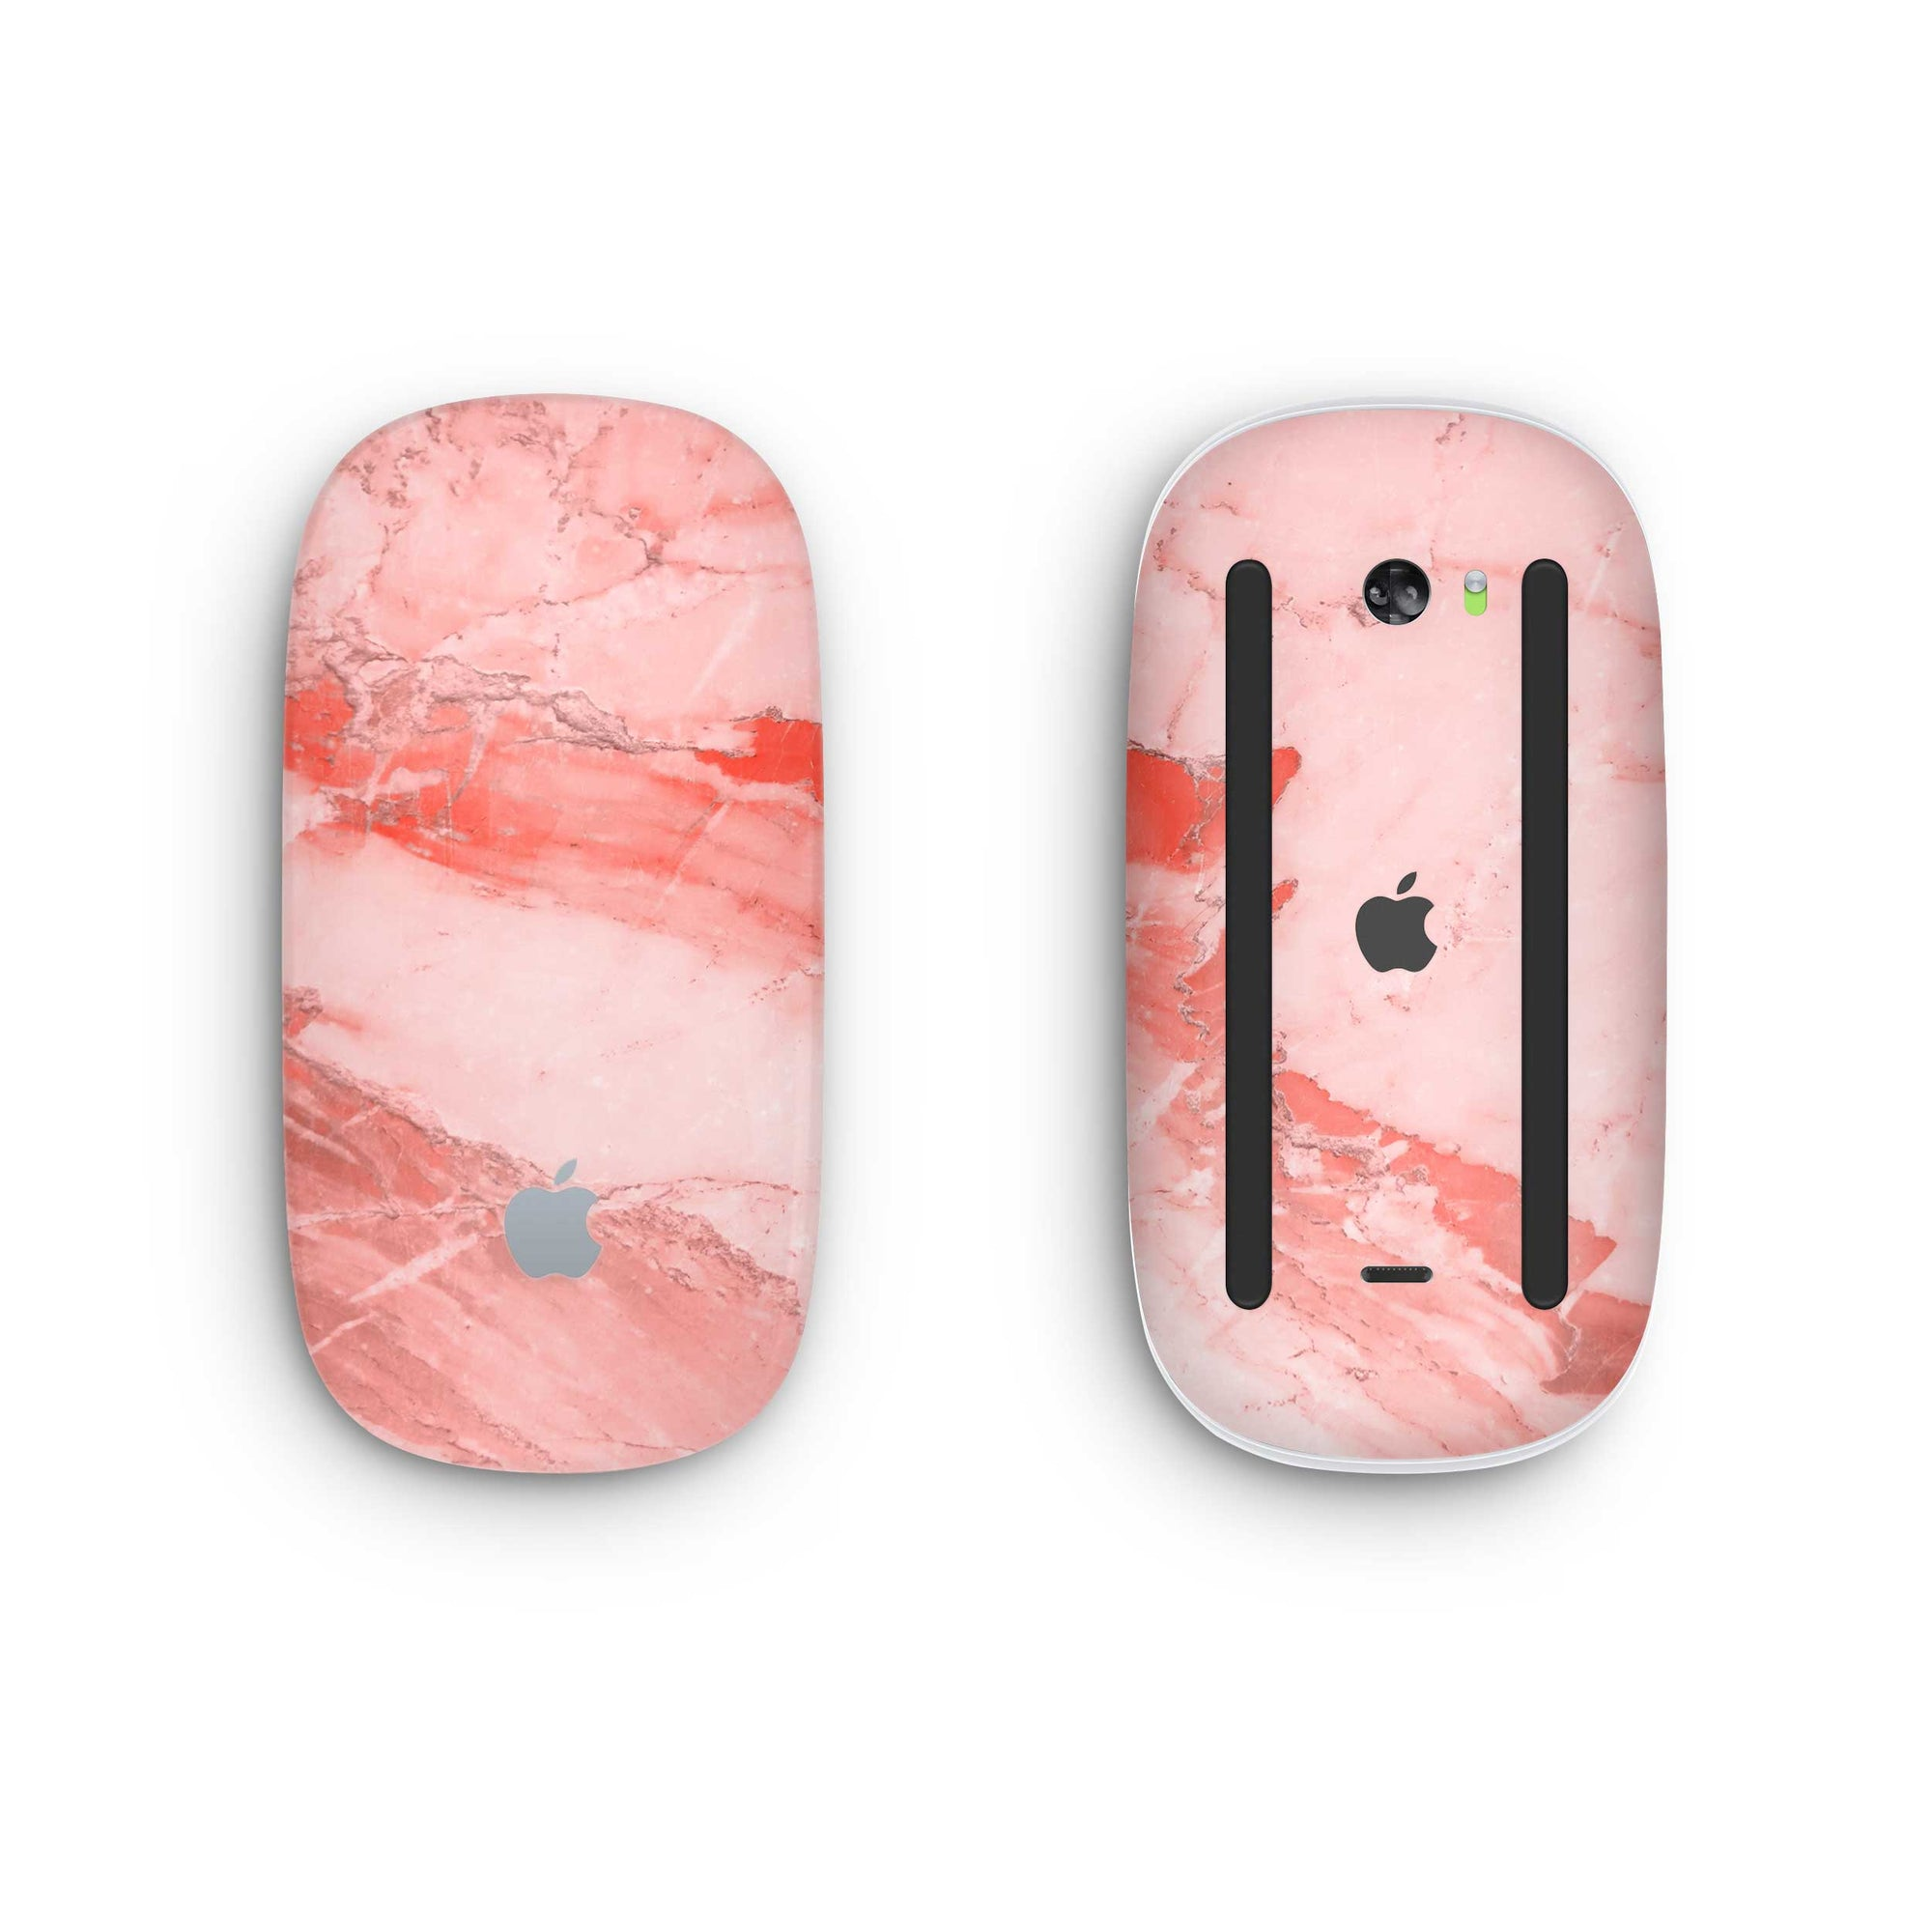 Coral Marble Magic Mouse 2 Skin